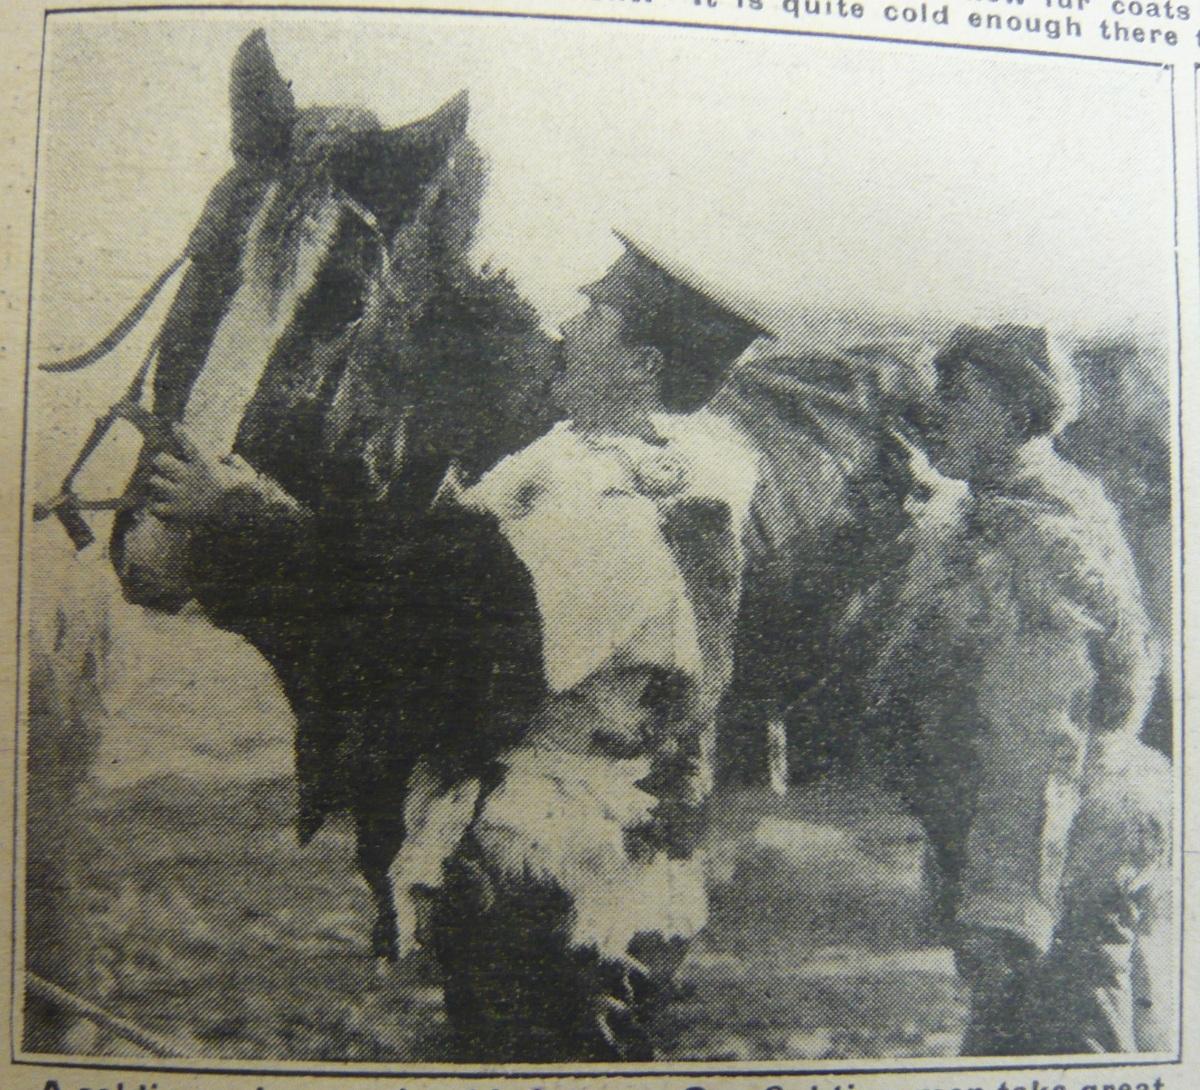 Sense & Sentimentality: The Soldier-Horse Relationship in The Great War.